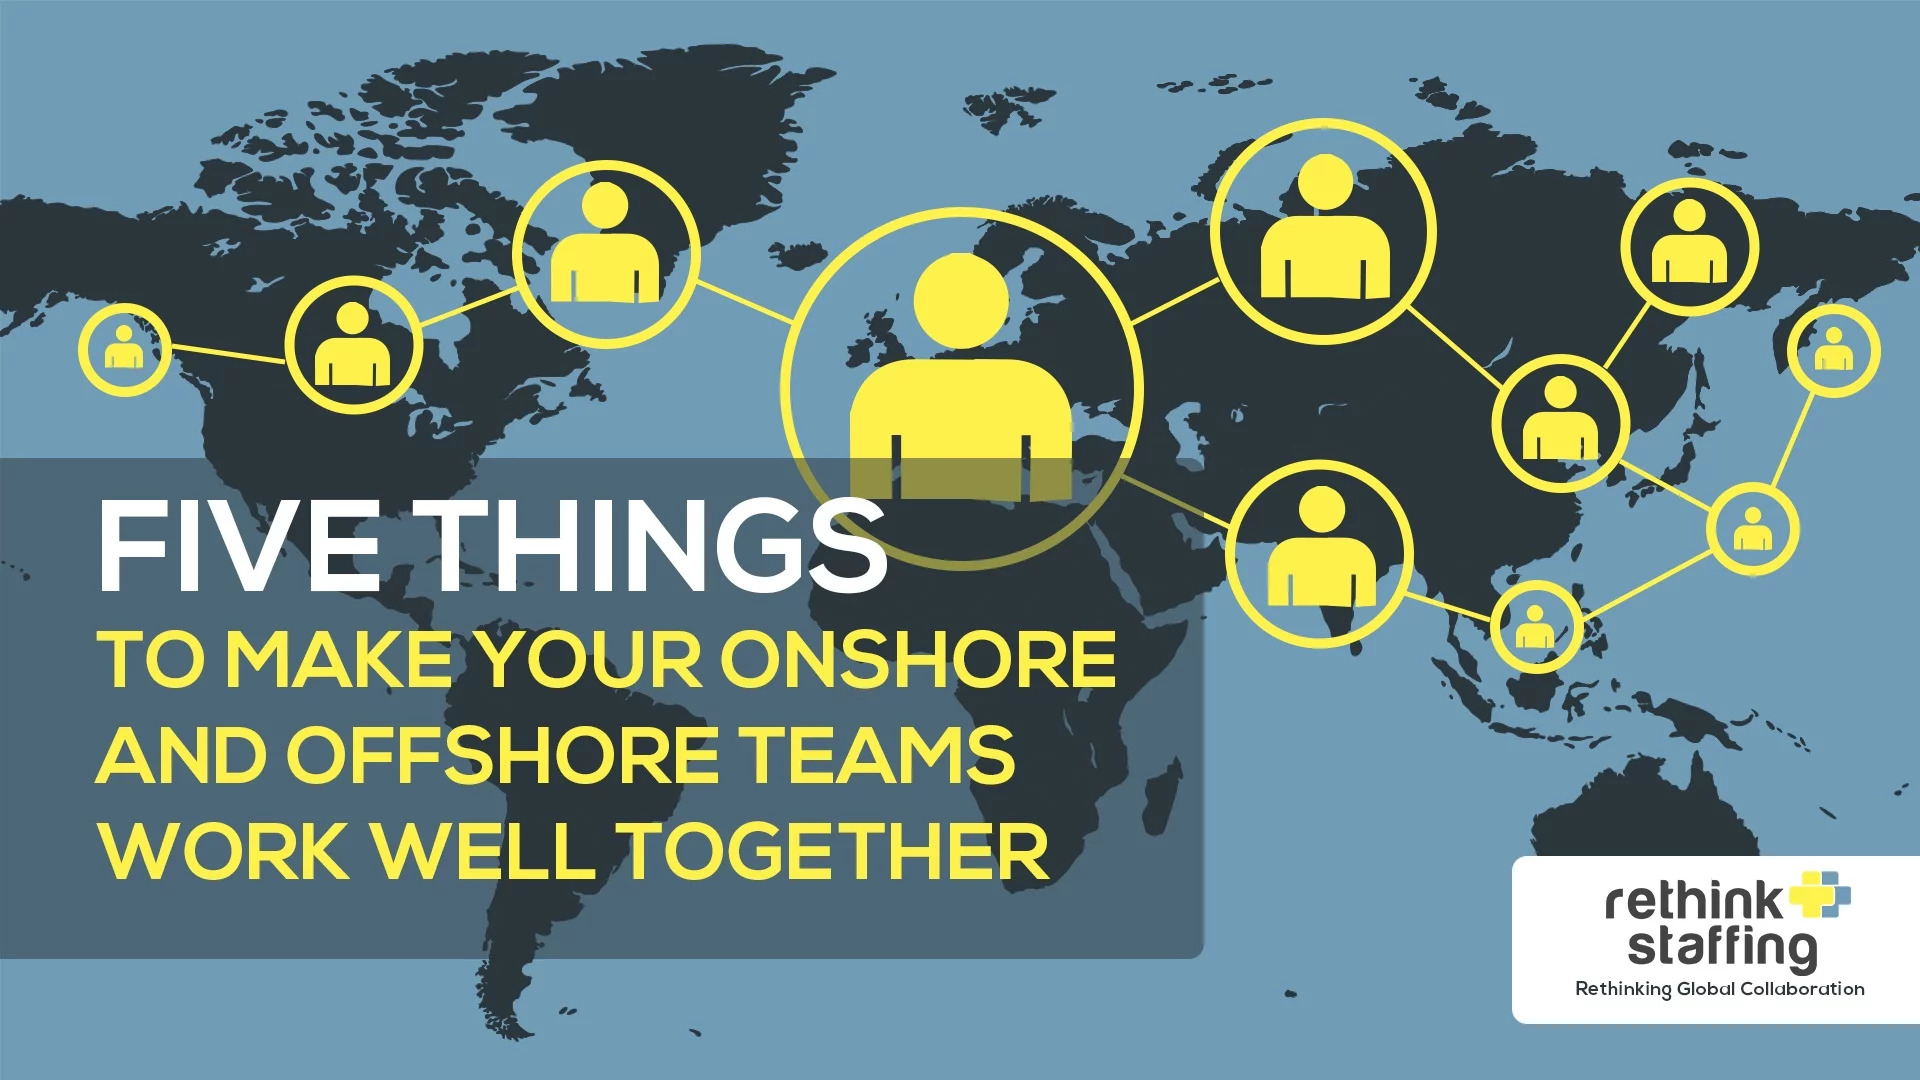 5 Ways for Onshore and Offshore Outsourcing Teams to Collaborate Successfully